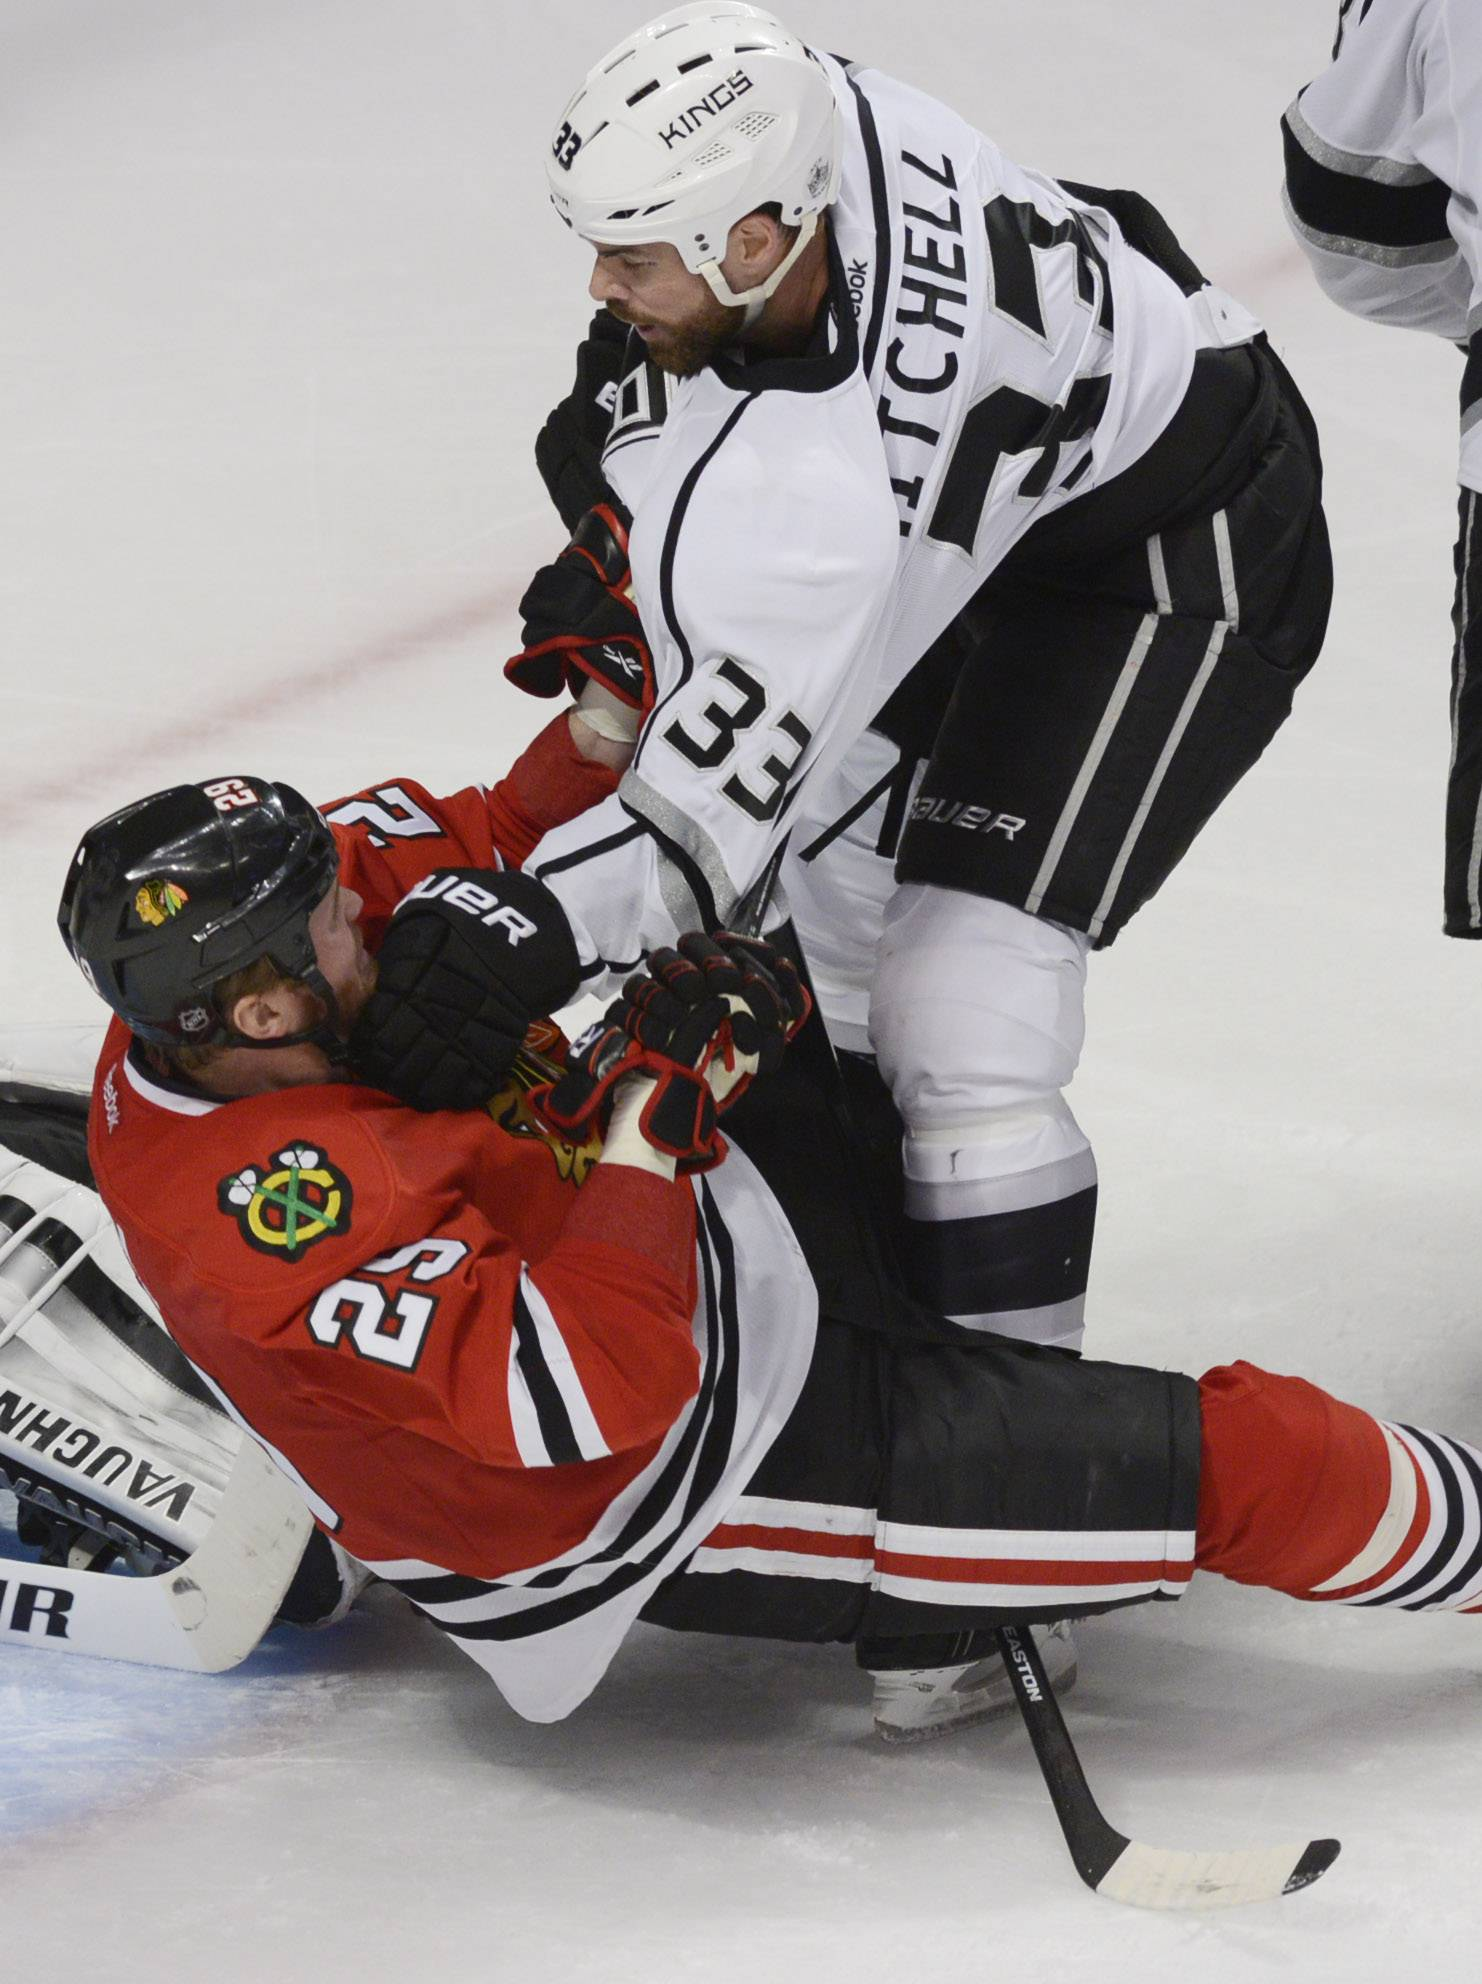 Los Angeles Kings defenseman Willie Mitchell knocks Chicago Blackhawks left wing Bryan Bickell to the ice in front of the Kings' goal during Sunday's game at the United Center in Chicago.